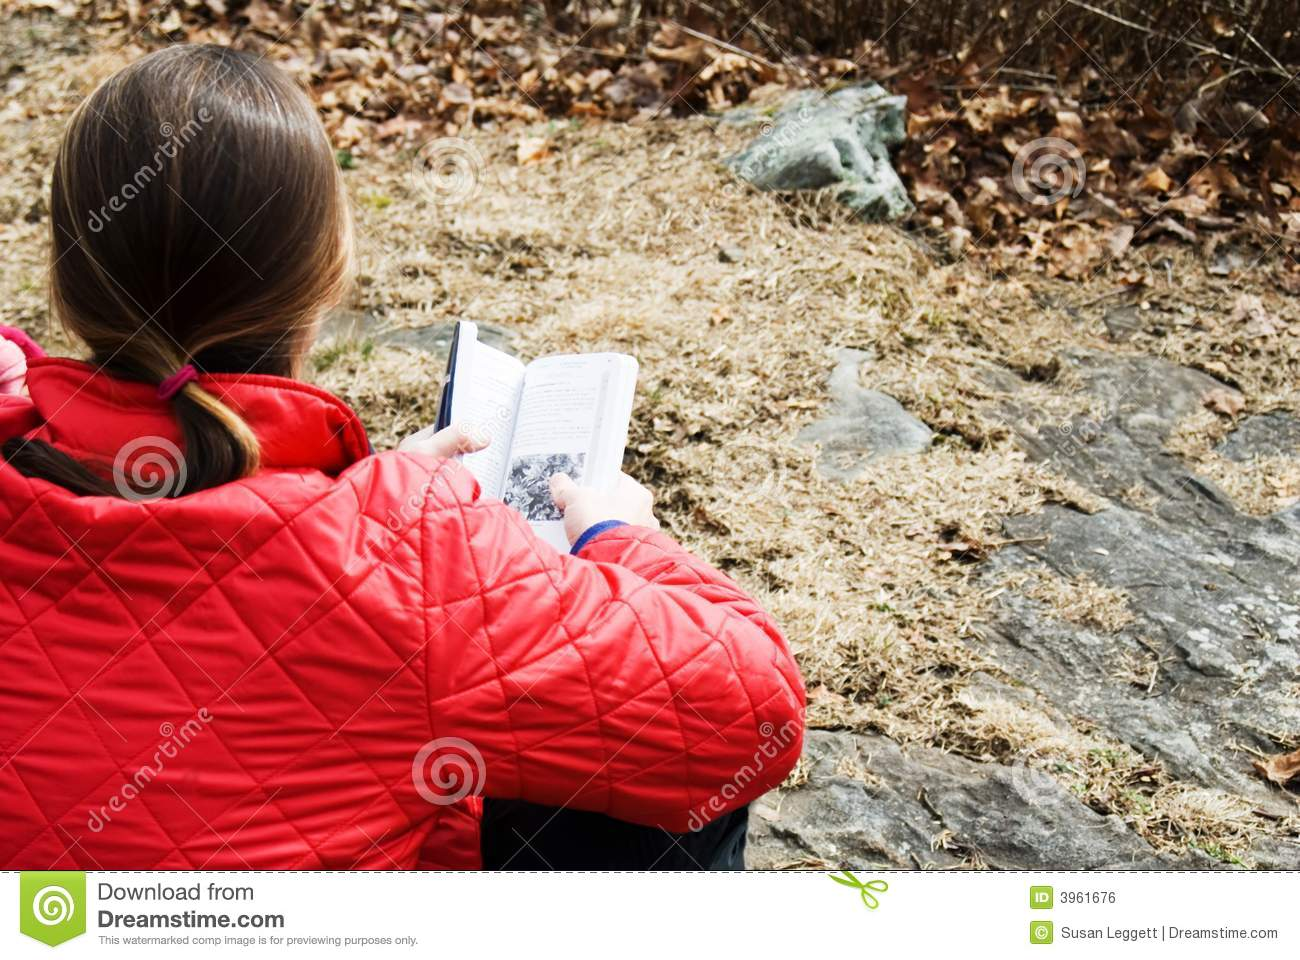 Woman with a book outdoors.